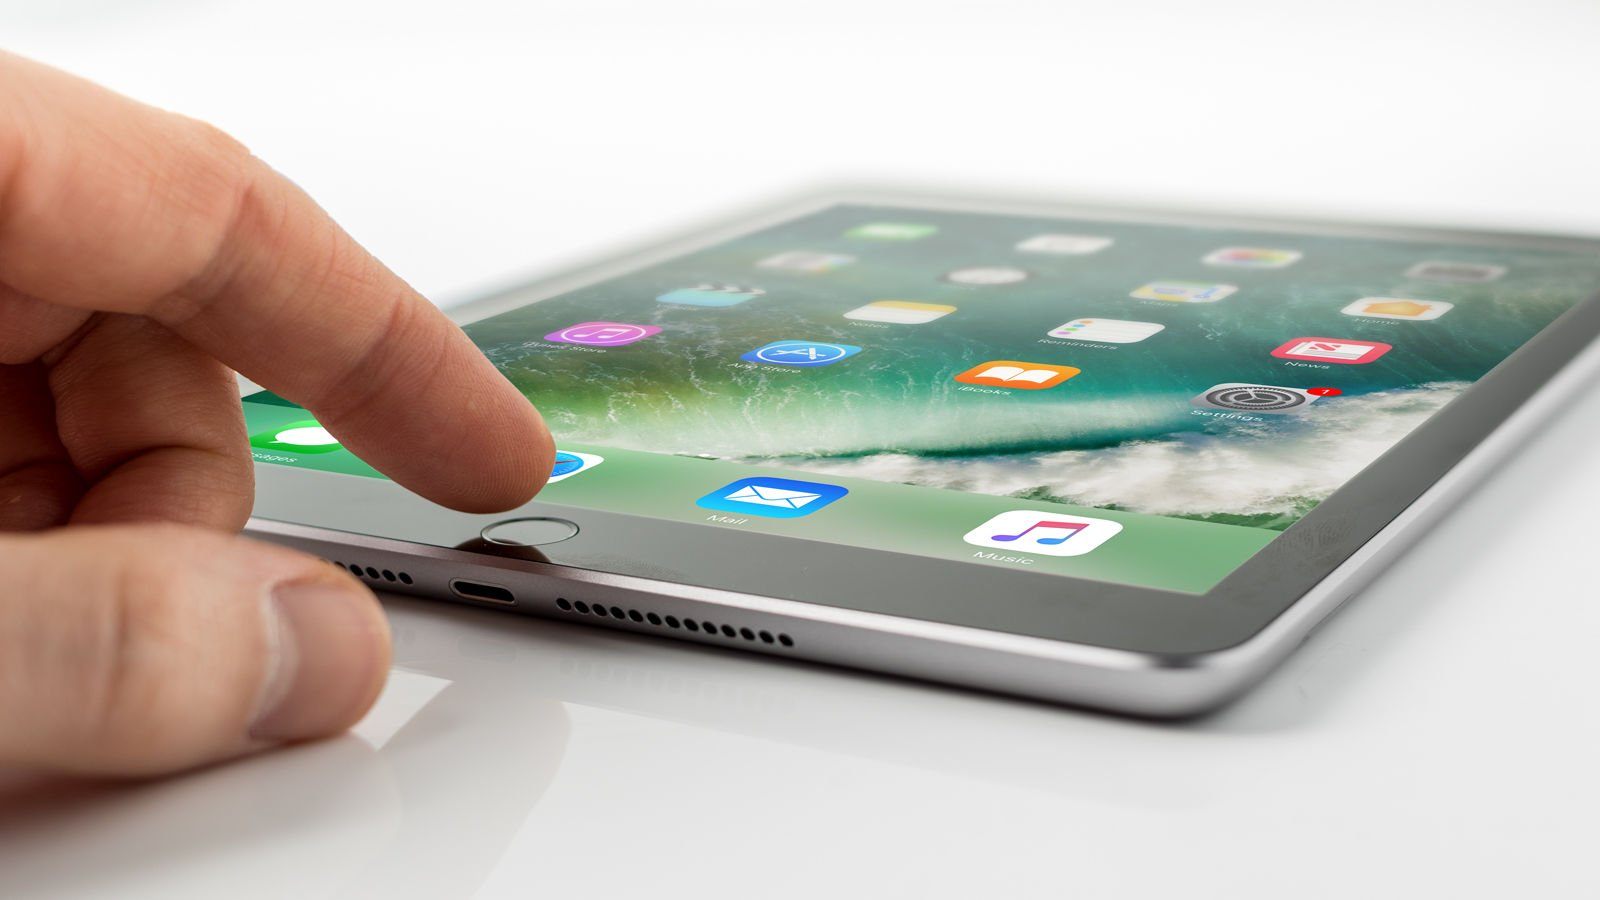 How to use an iPad: Home button